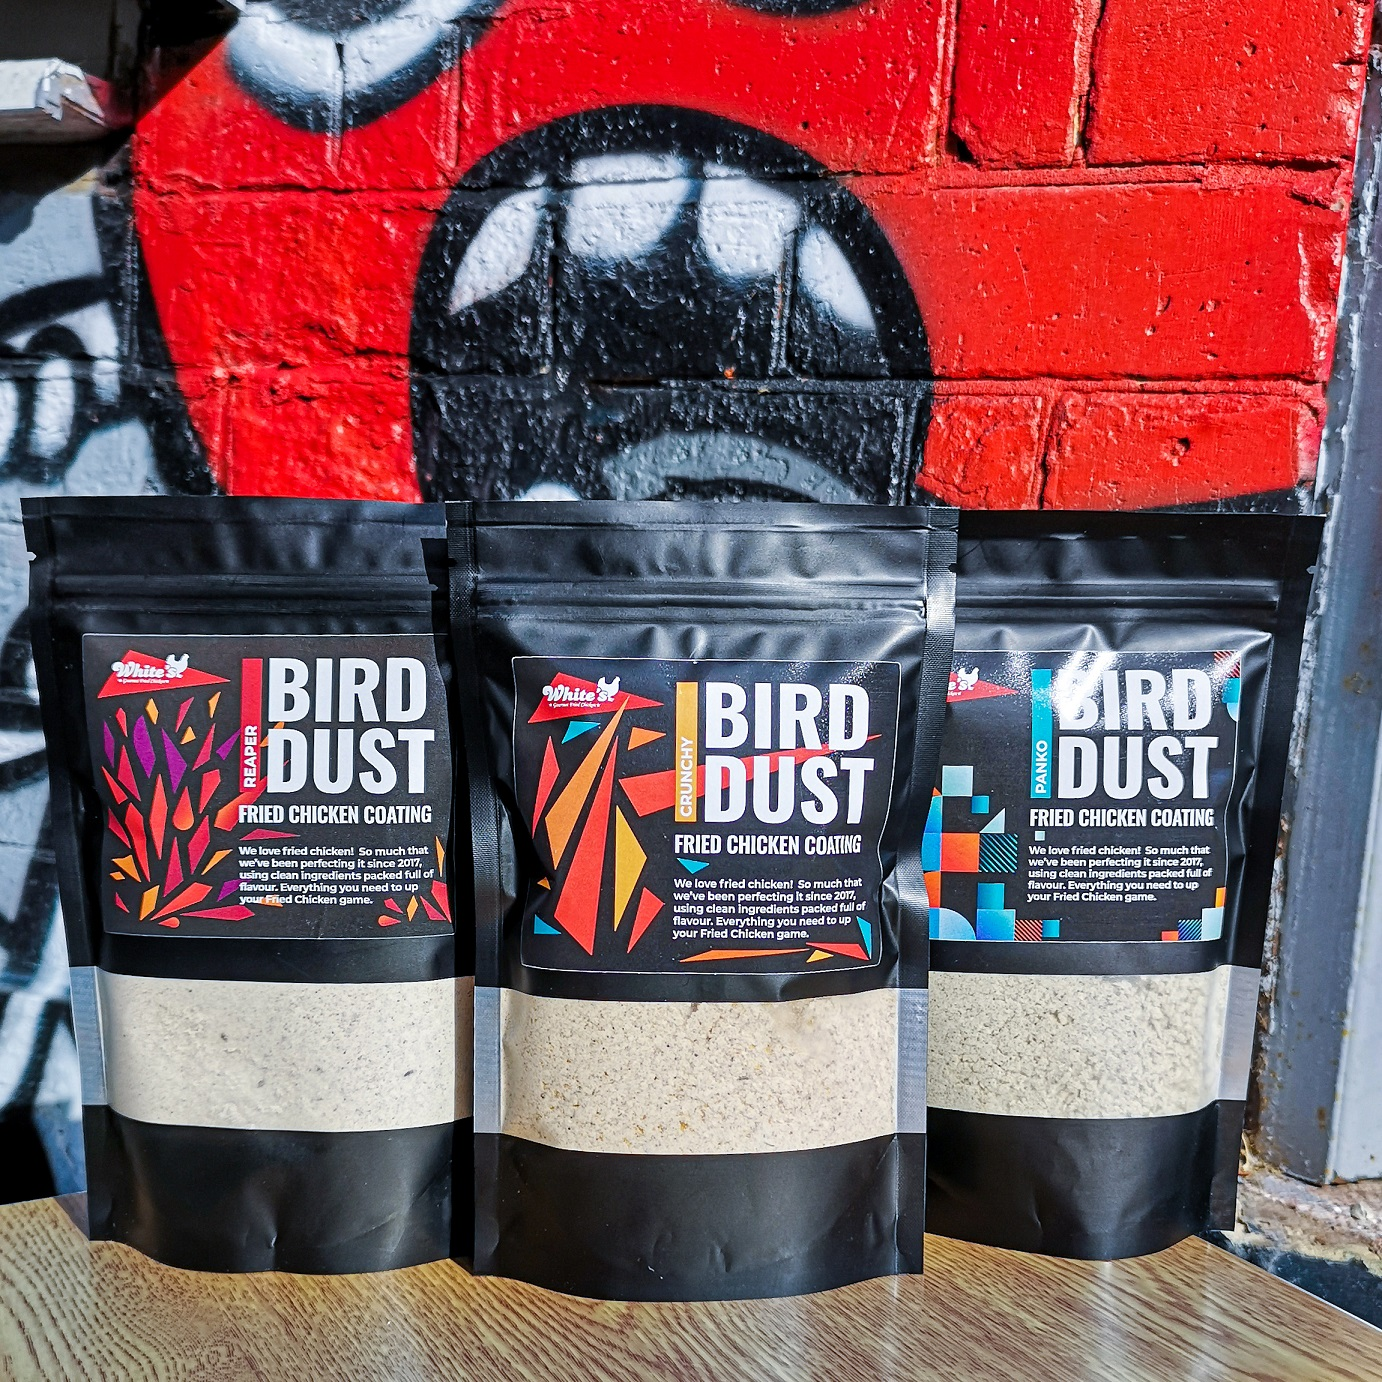 Entrepreneur's tasty Bird Dust range of chicken coatings is flying off the shelves after support from the Food Innovation Centre